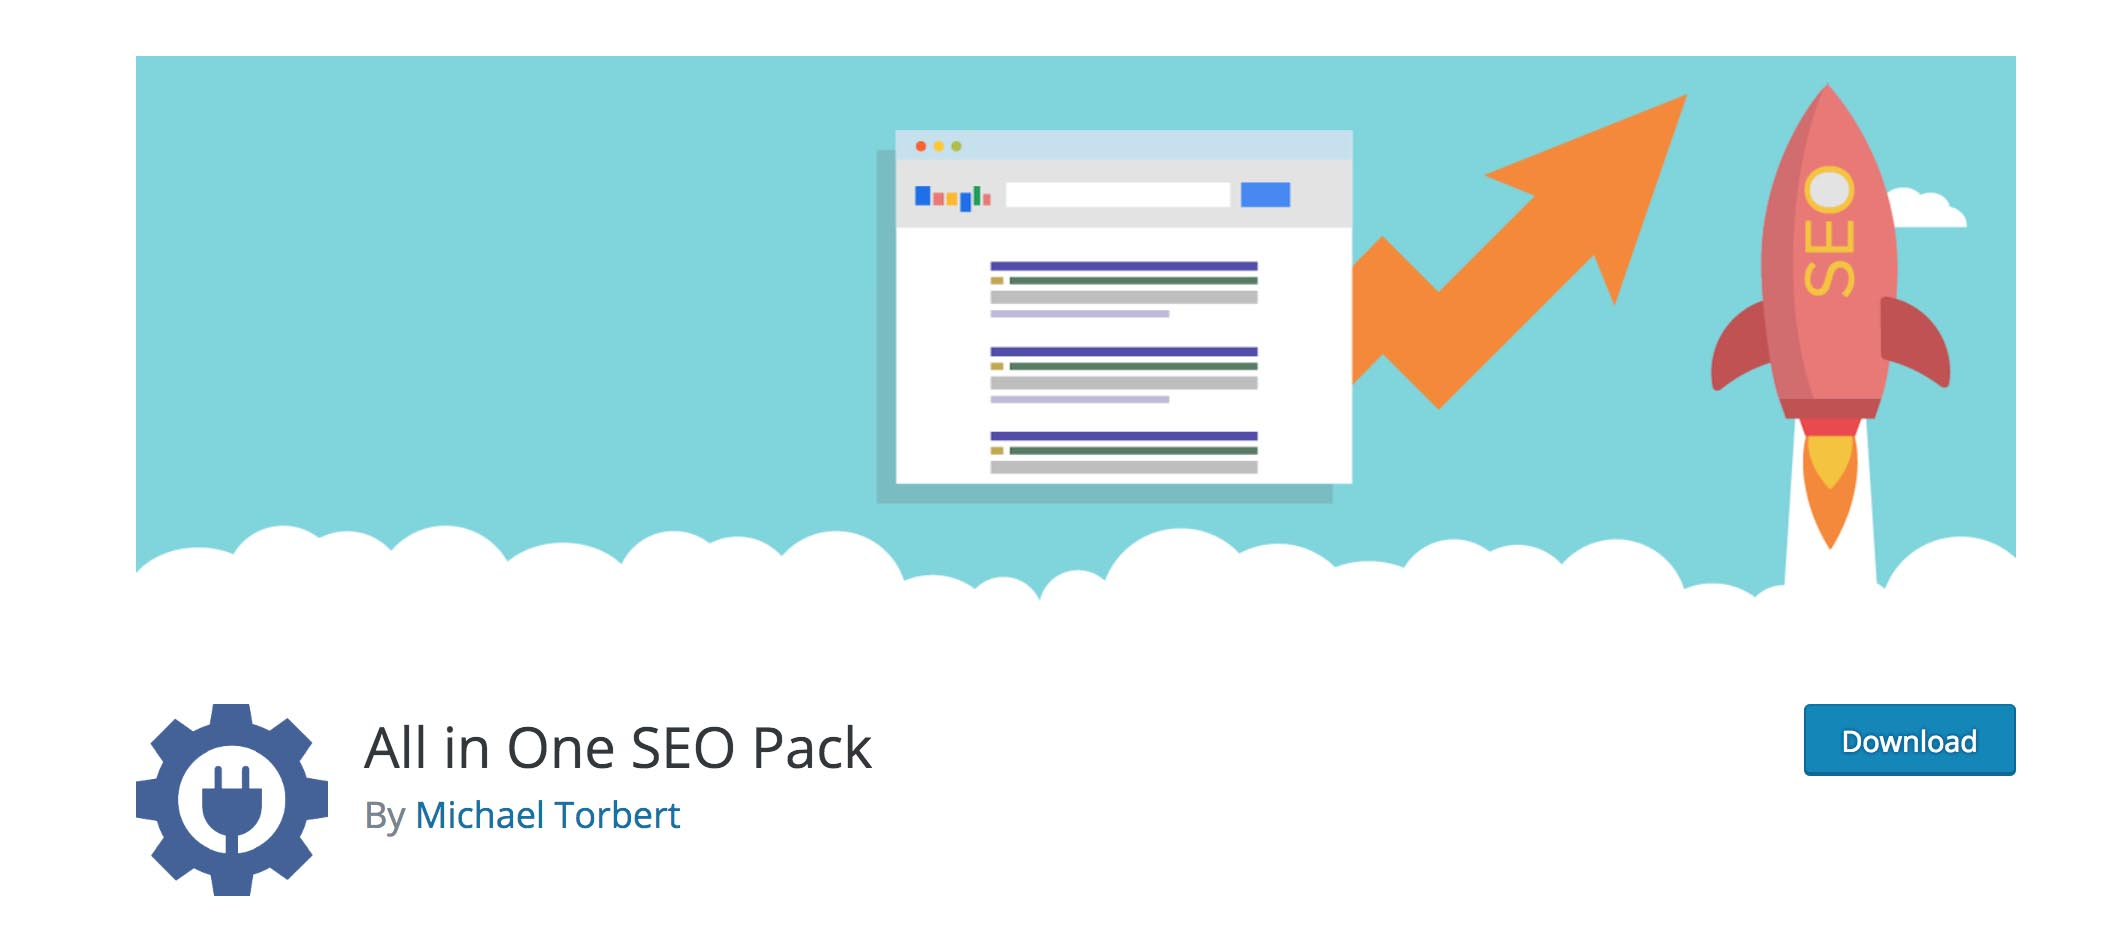 All in one SEO Pack dodatak